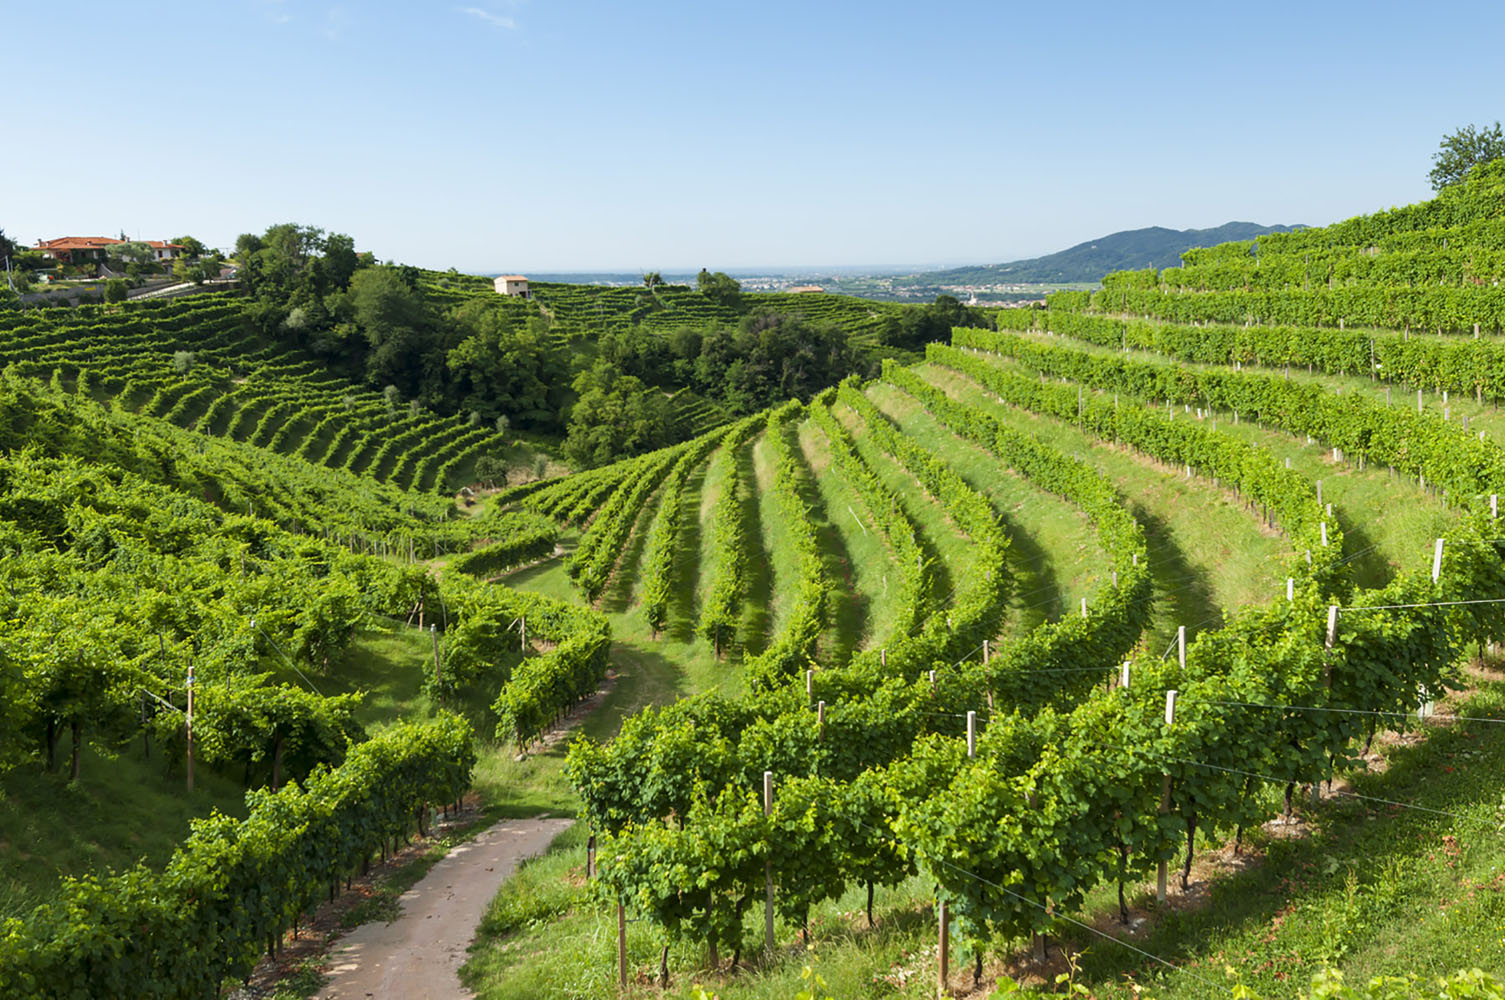 Vineyards in Northern Italy will produce Prosecco.